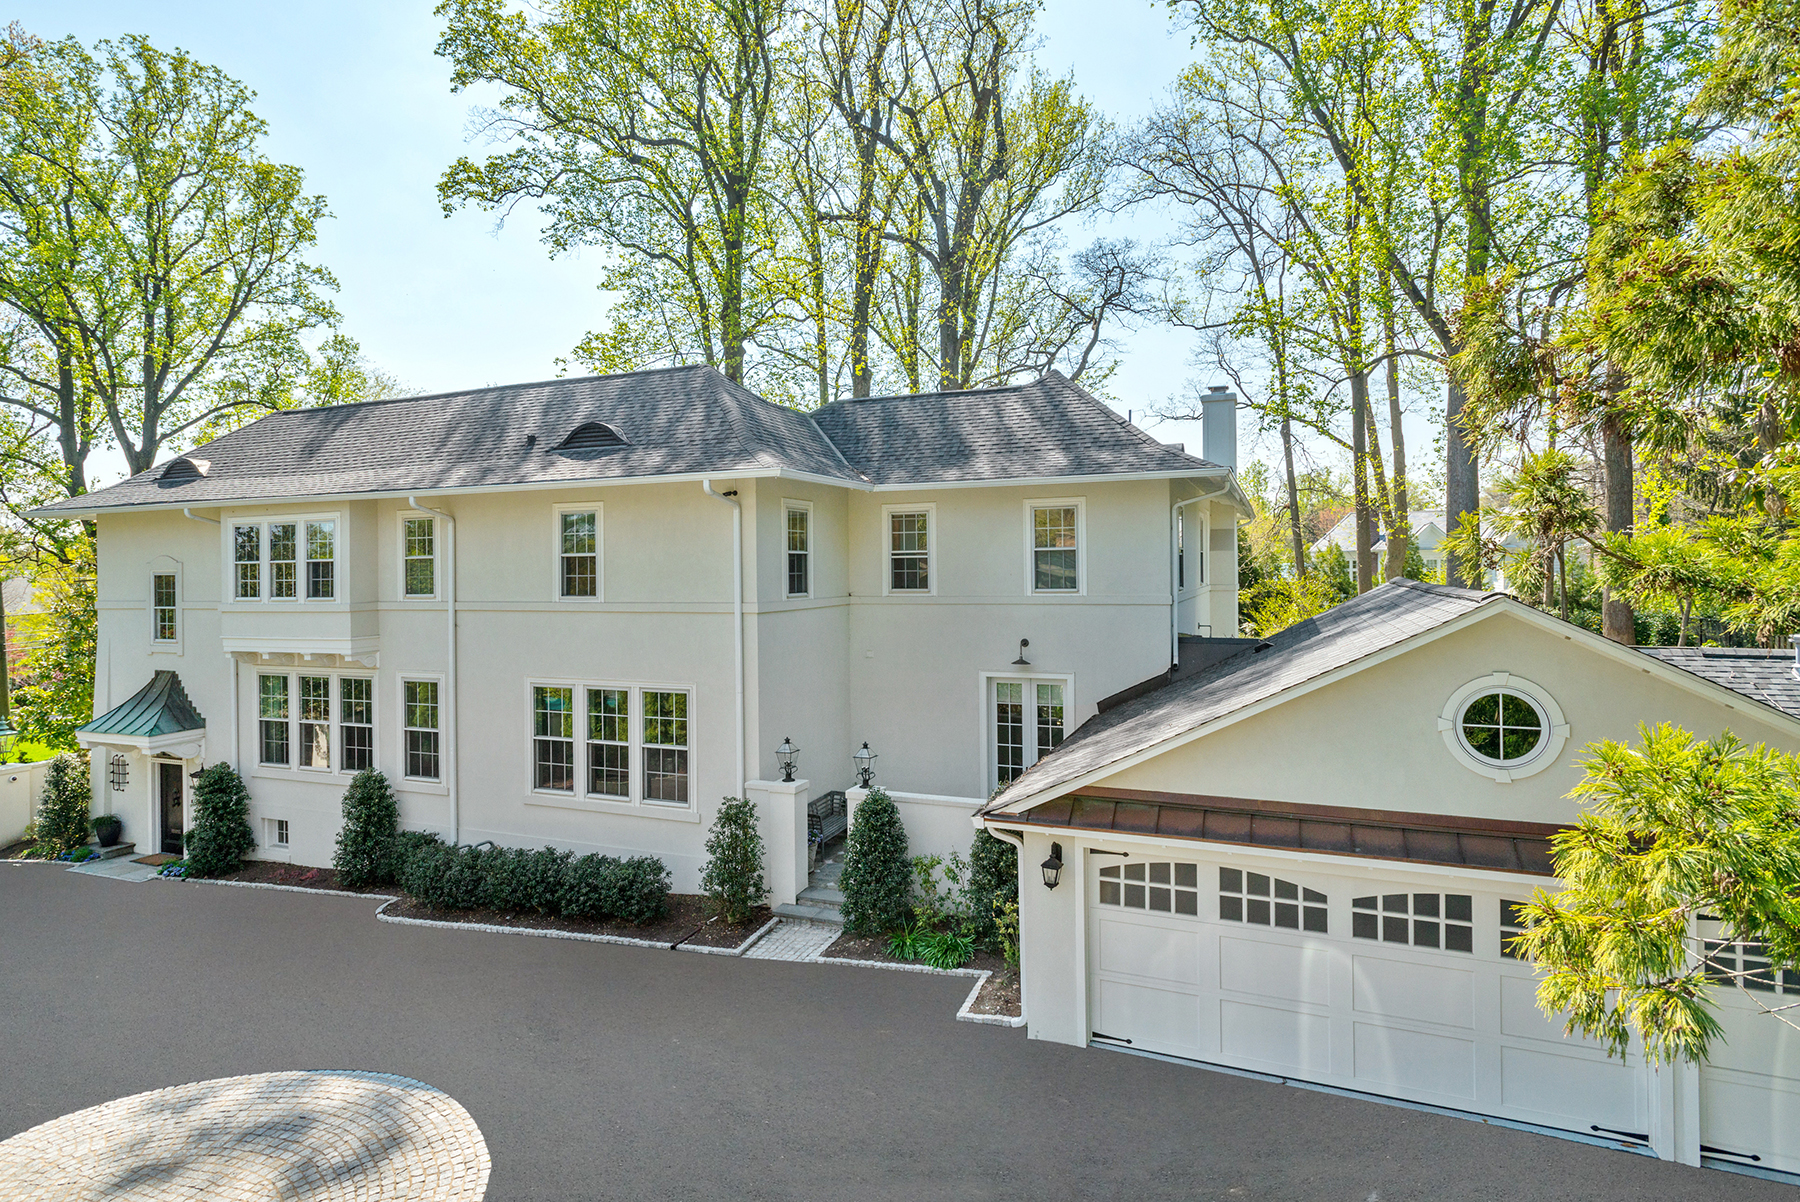 Additional photo for property listing at 5215 Edgemoor Lane, Bethesda 5215 Edgemoor Ln Bethesda, Maryland 20814 Stati Uniti